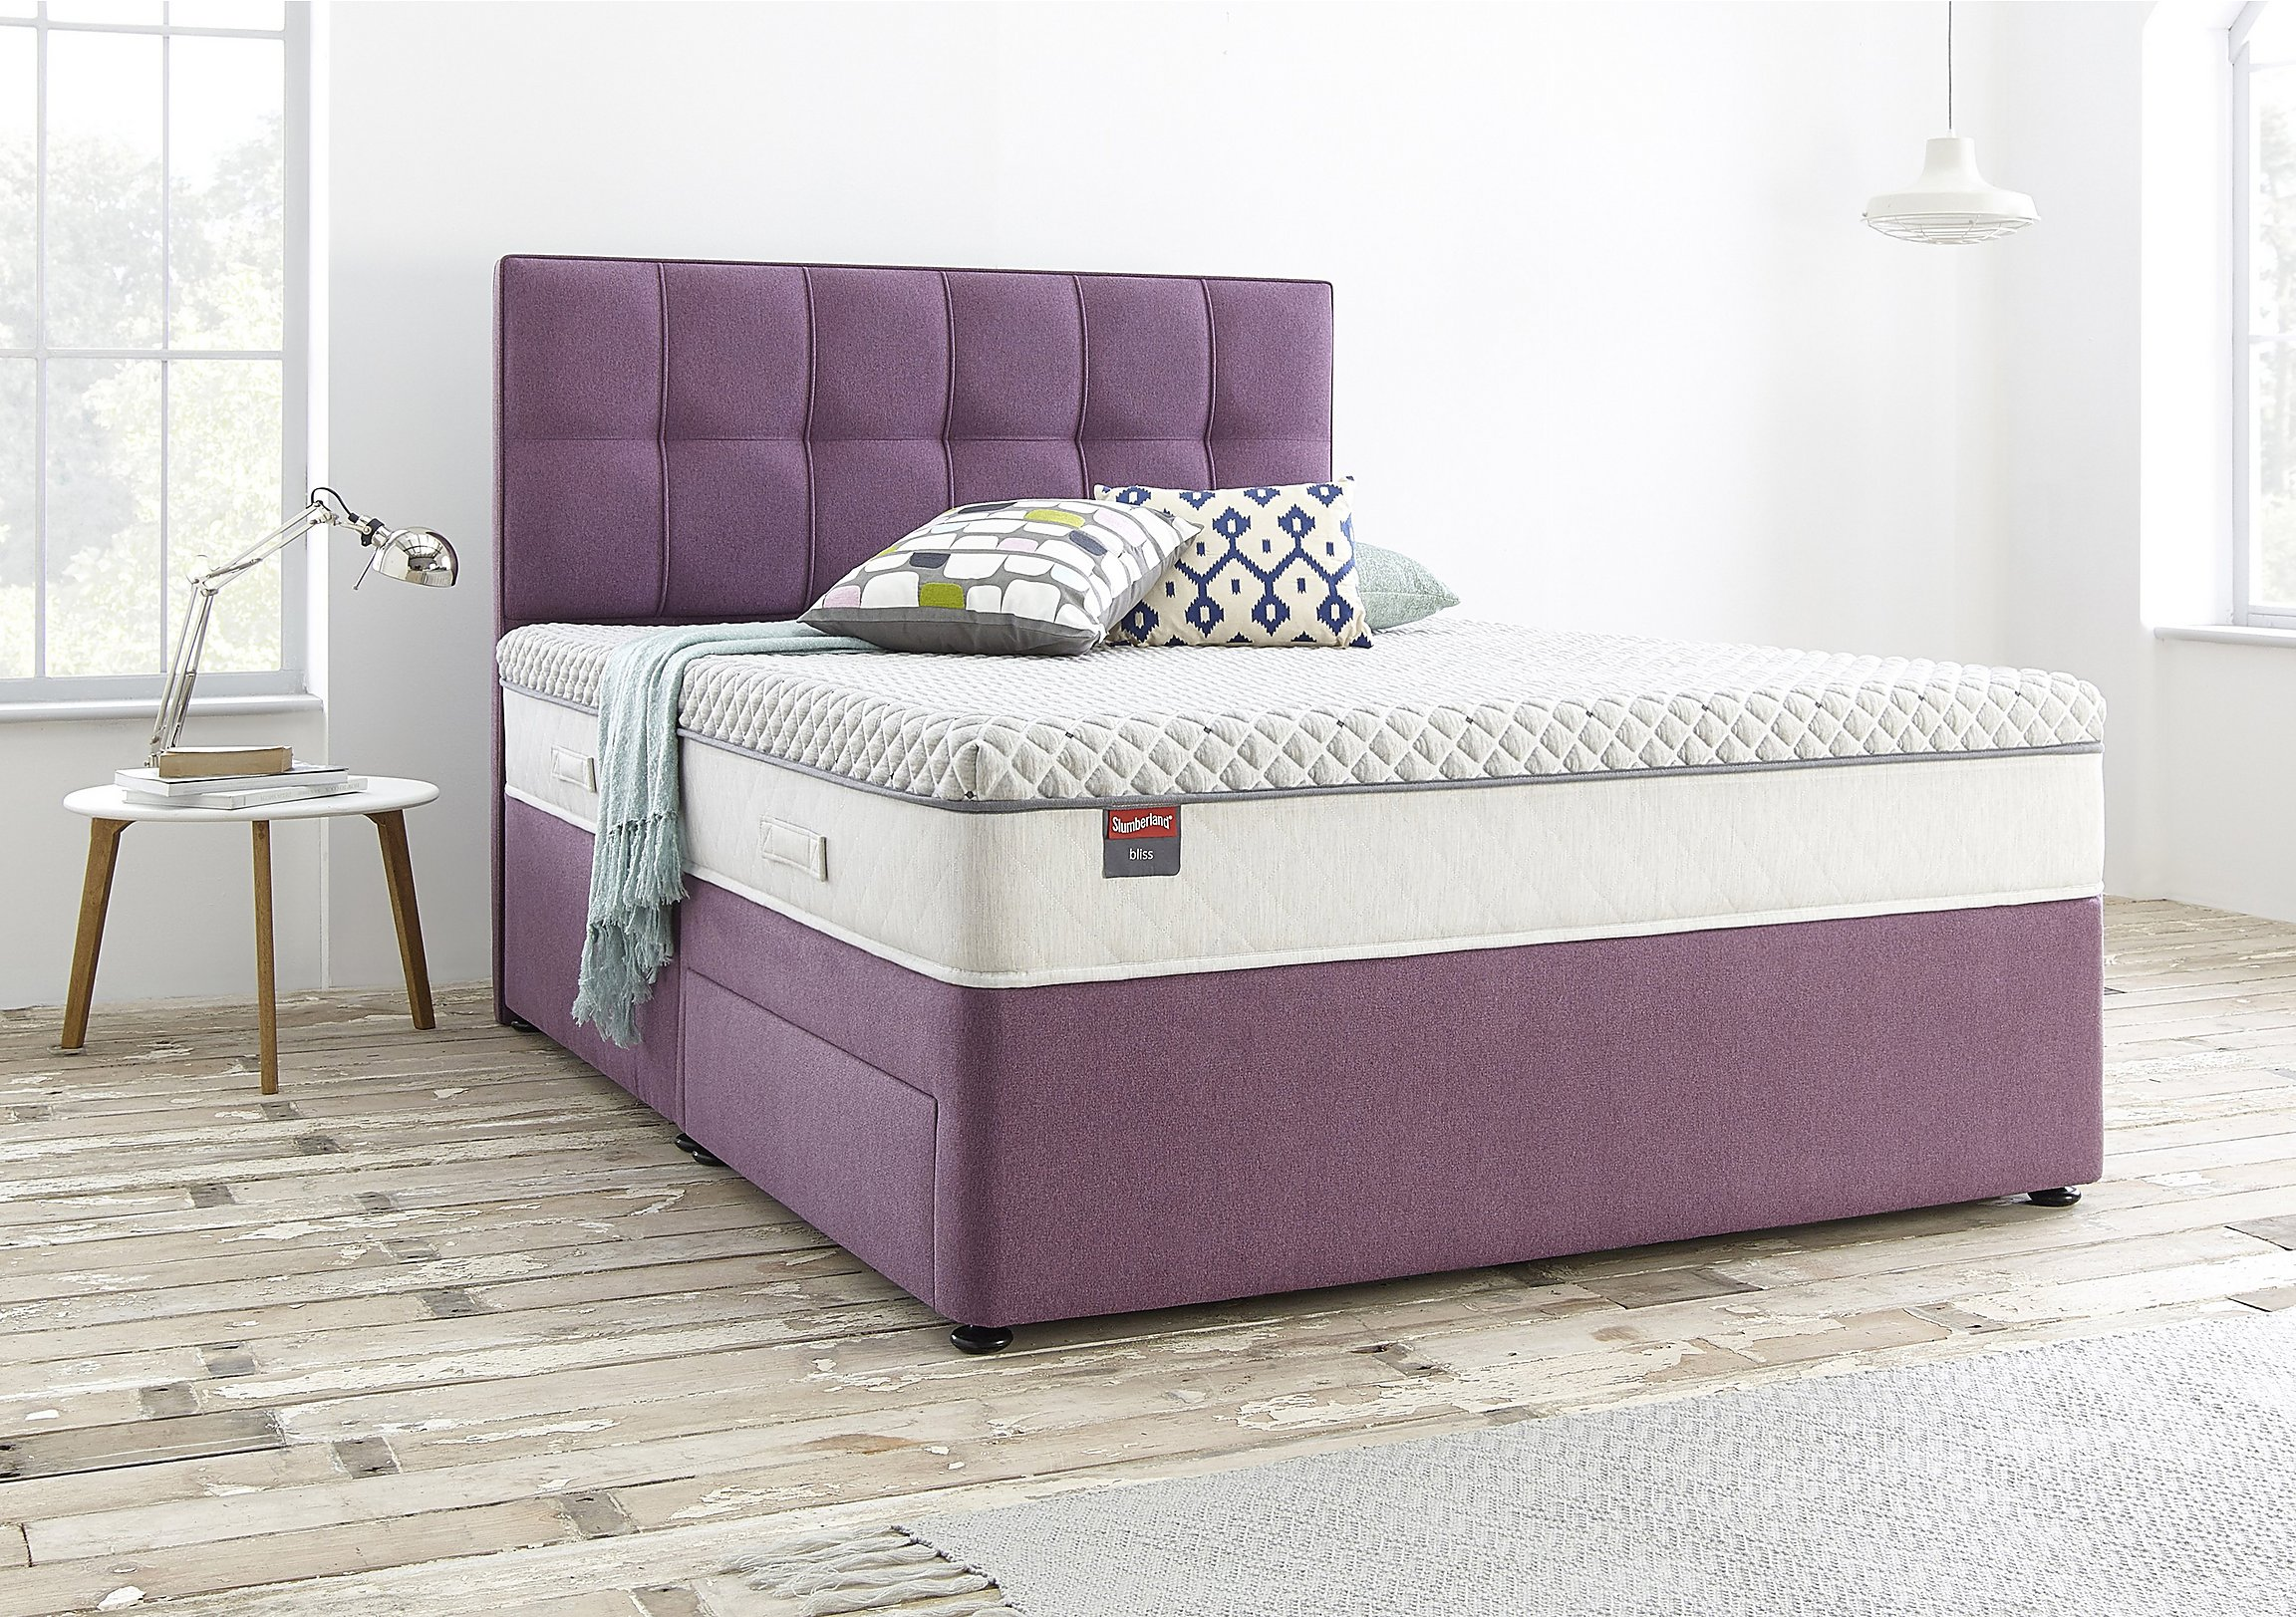 fulham beds slumberland bed